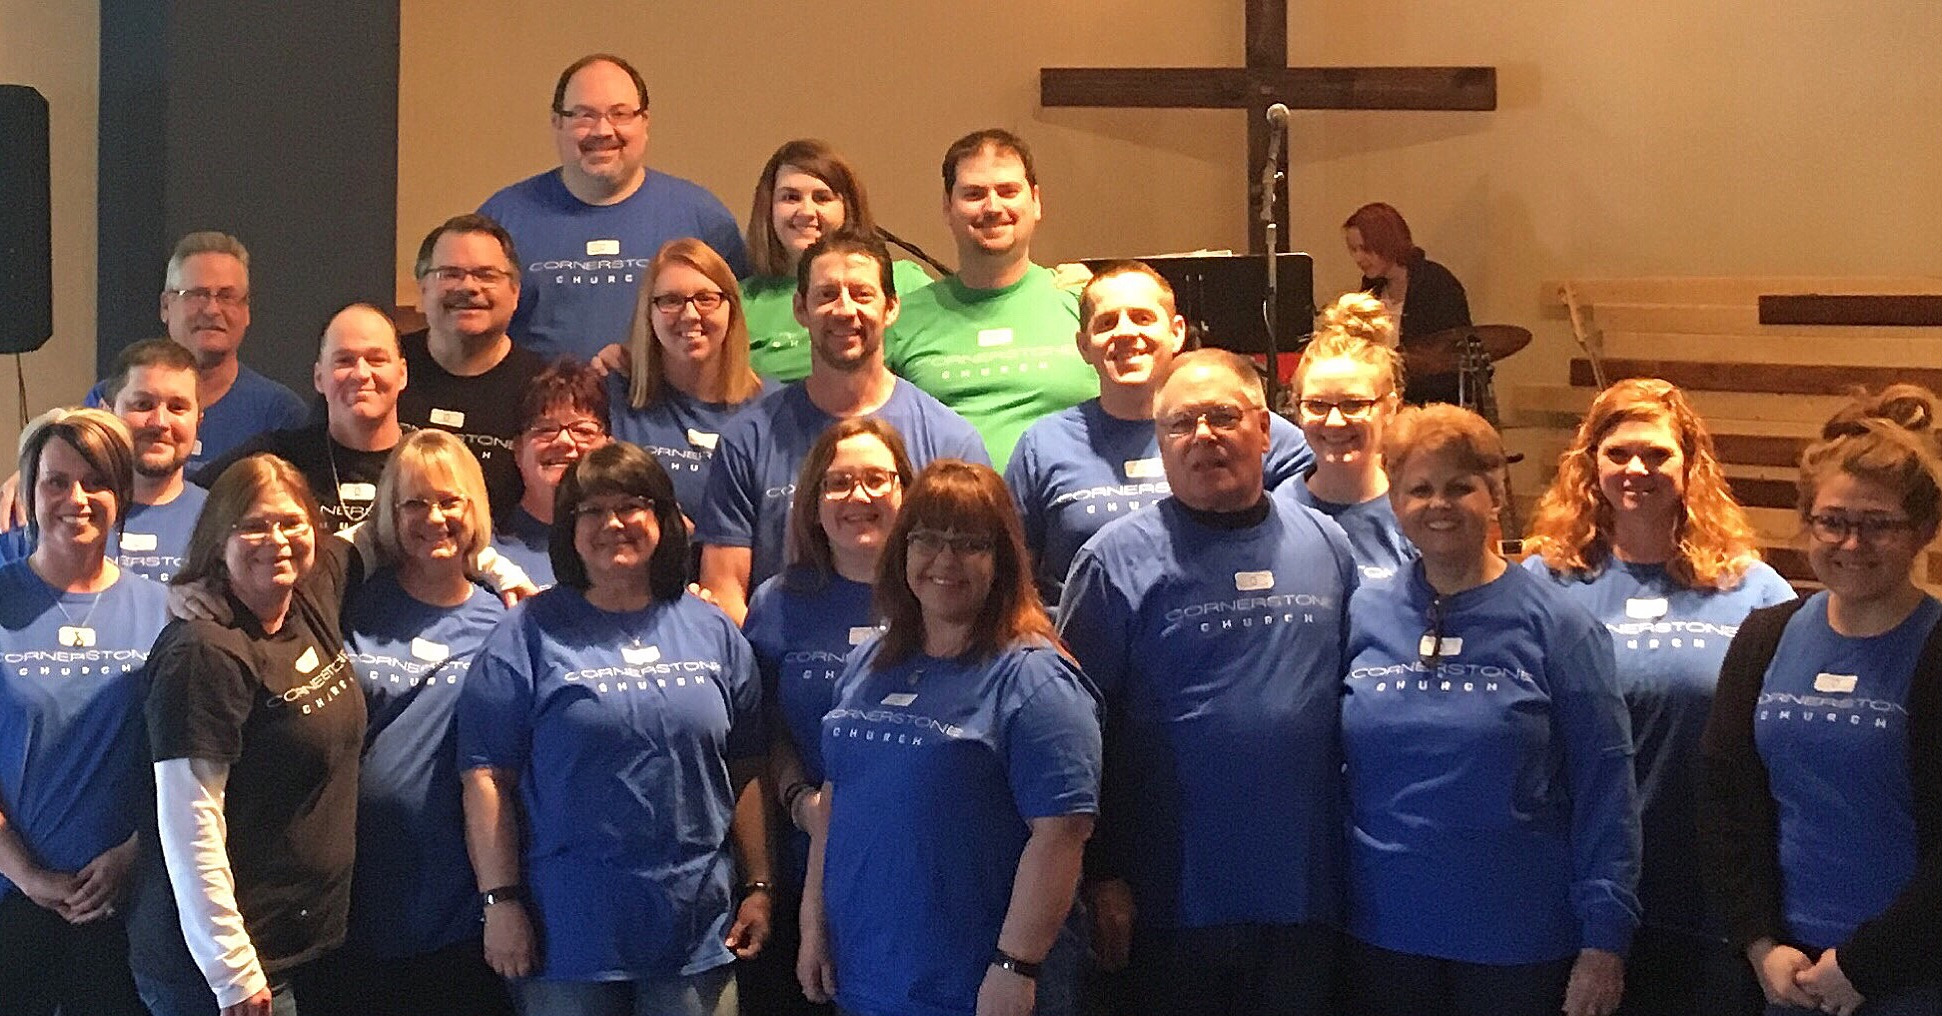 We love our Cornerstone Church Family!